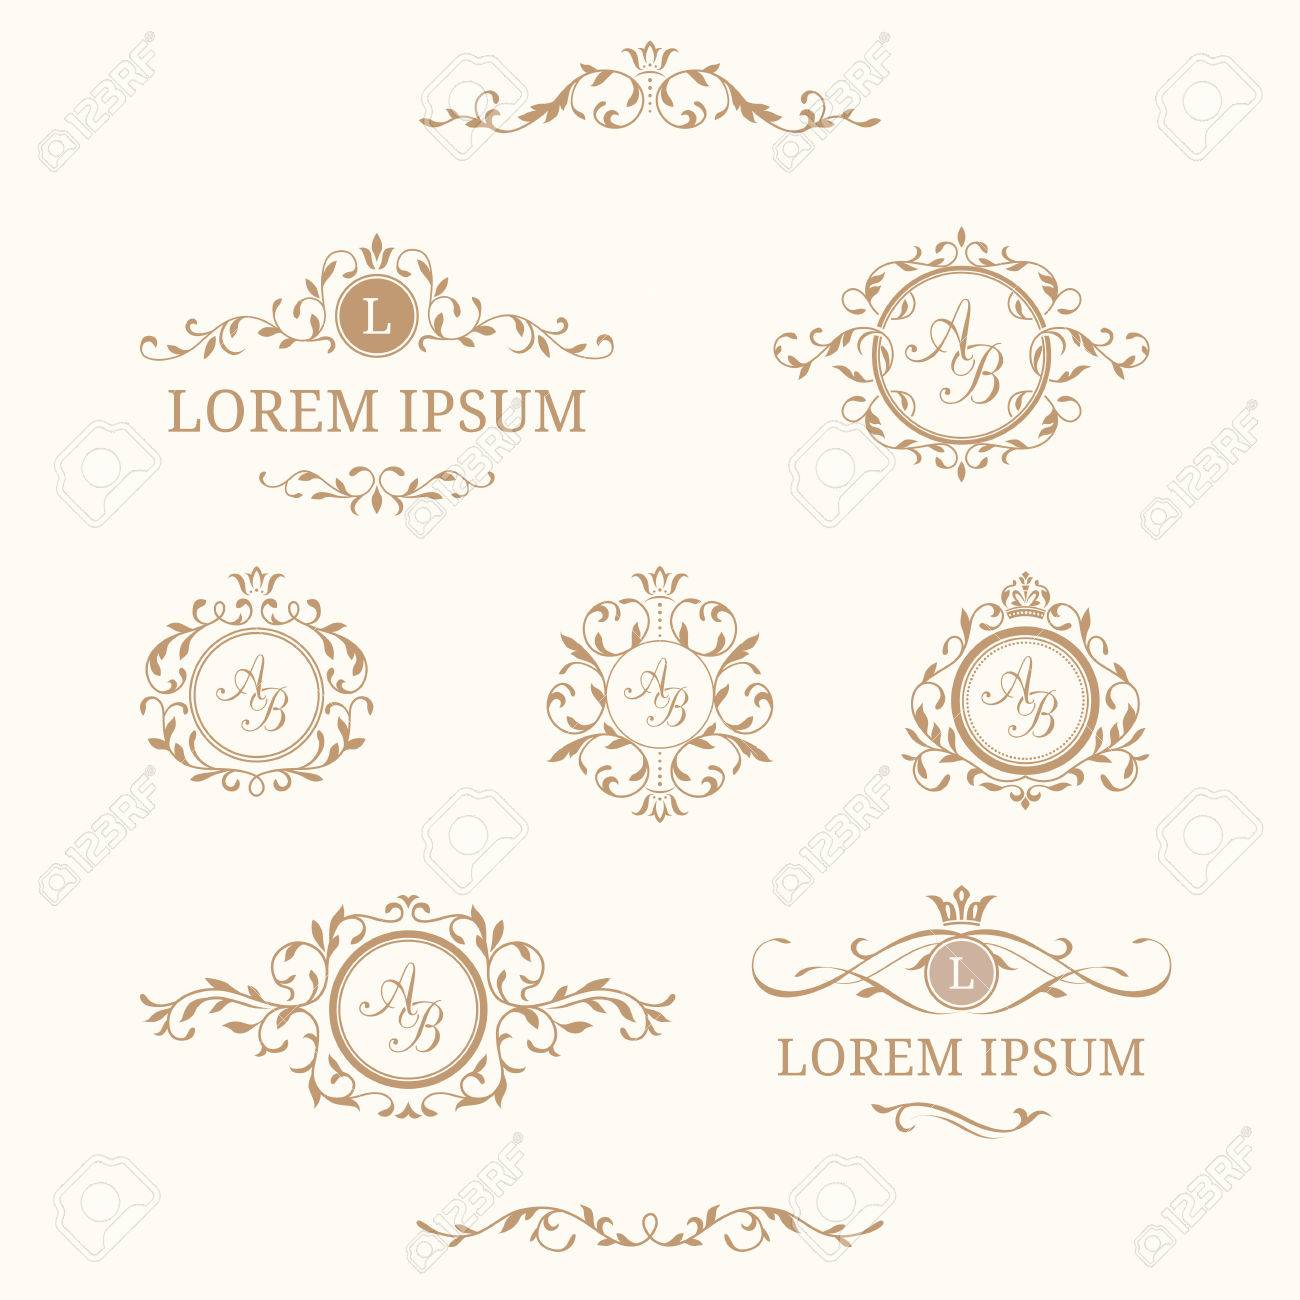 Elegant Floral Monograms And Borders Design Templates For